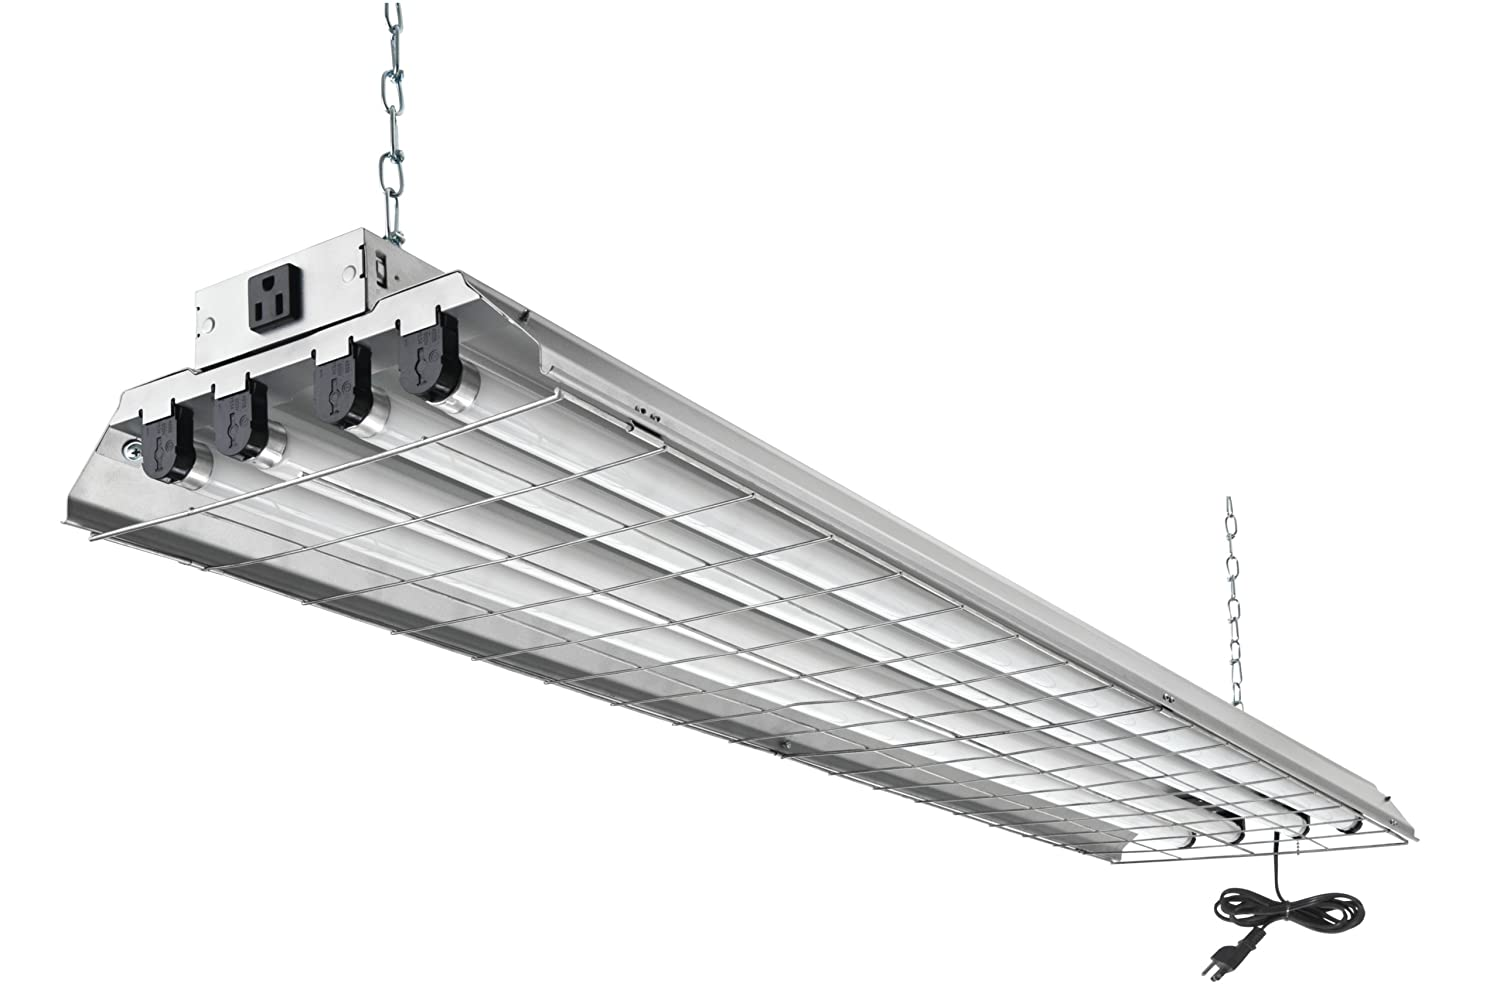 Lithonia Lighting 1284GRD RE 4-Light Heavy Duty Shoplight - Ceiling ...